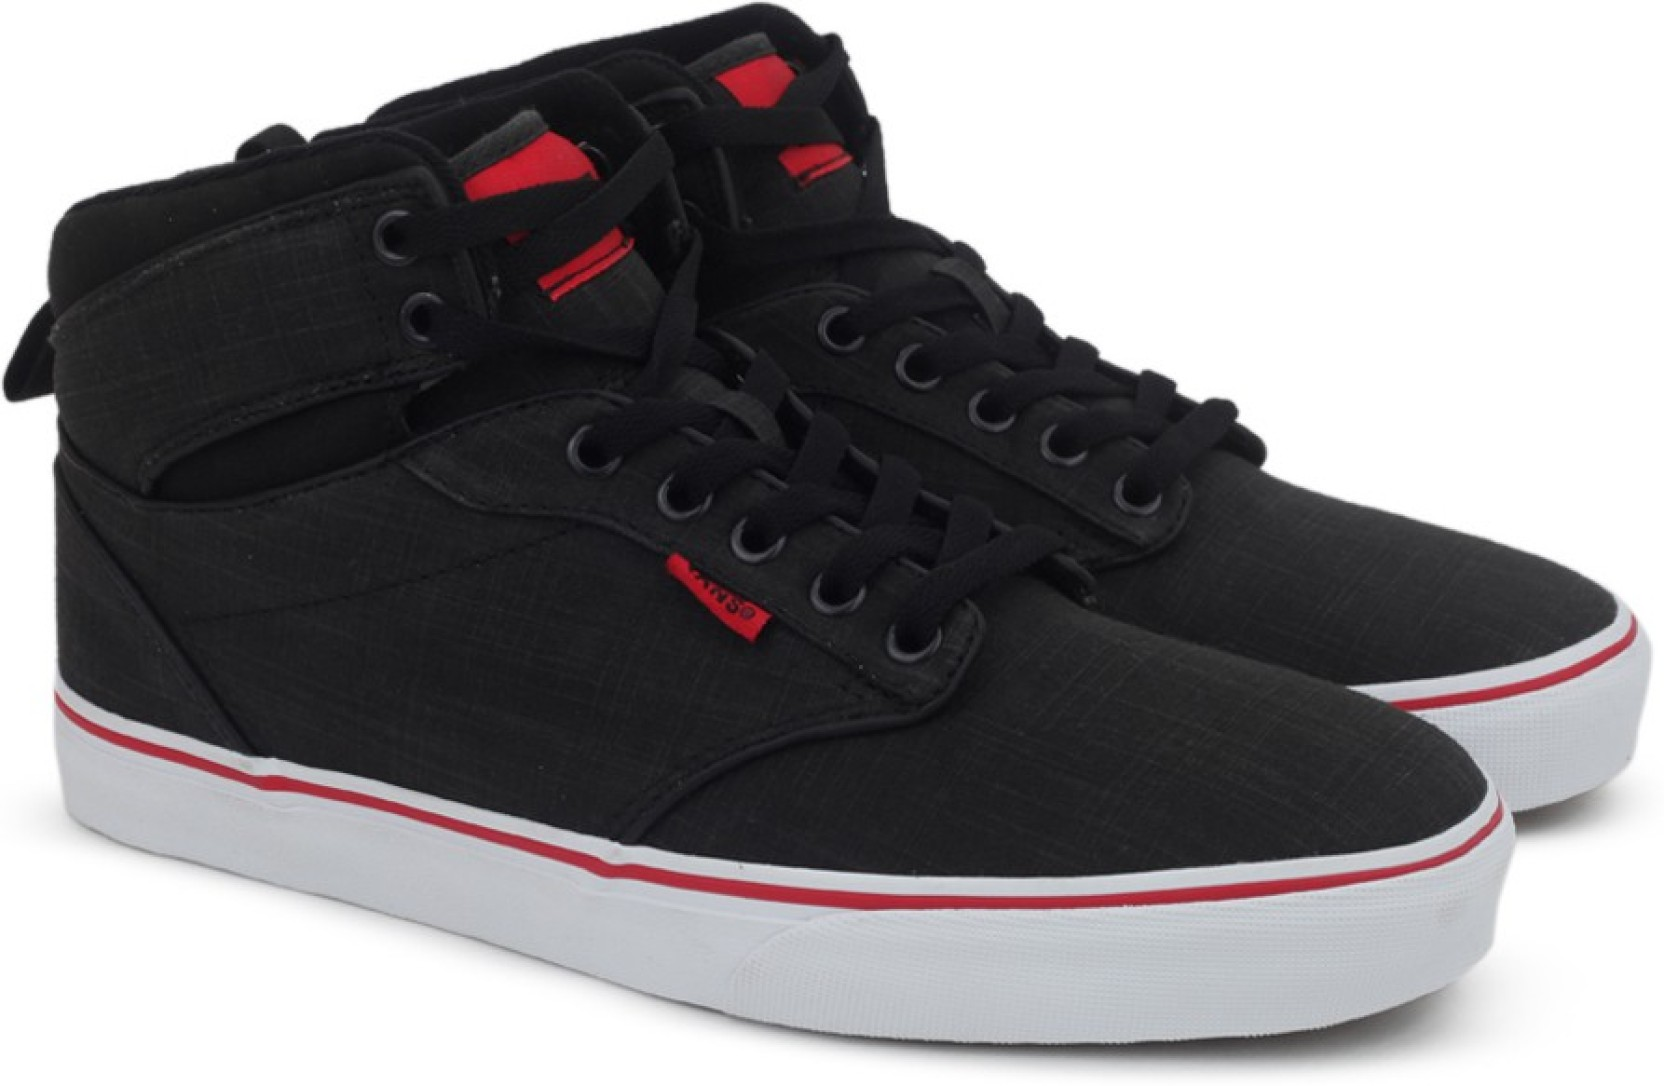 Vans ATWOOD HI High Ankle Sneakers For Men - Buy (ROCK TEXTILE ... 94653949f8fd